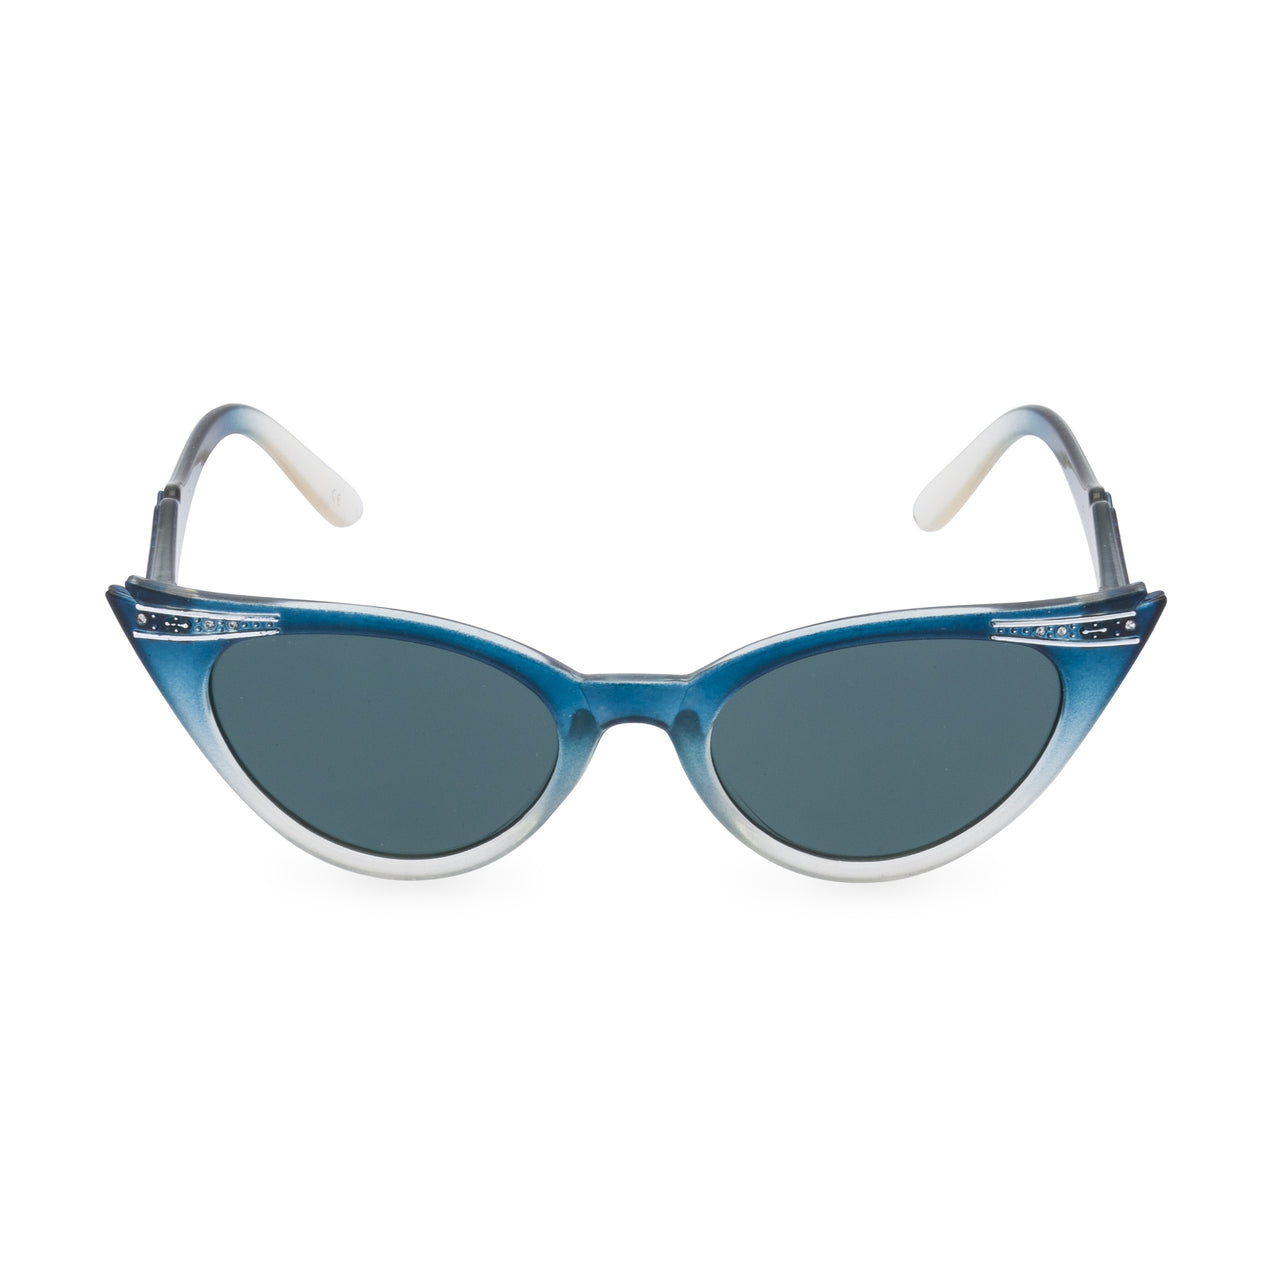 Betty - Sunglasses Graduated Blue